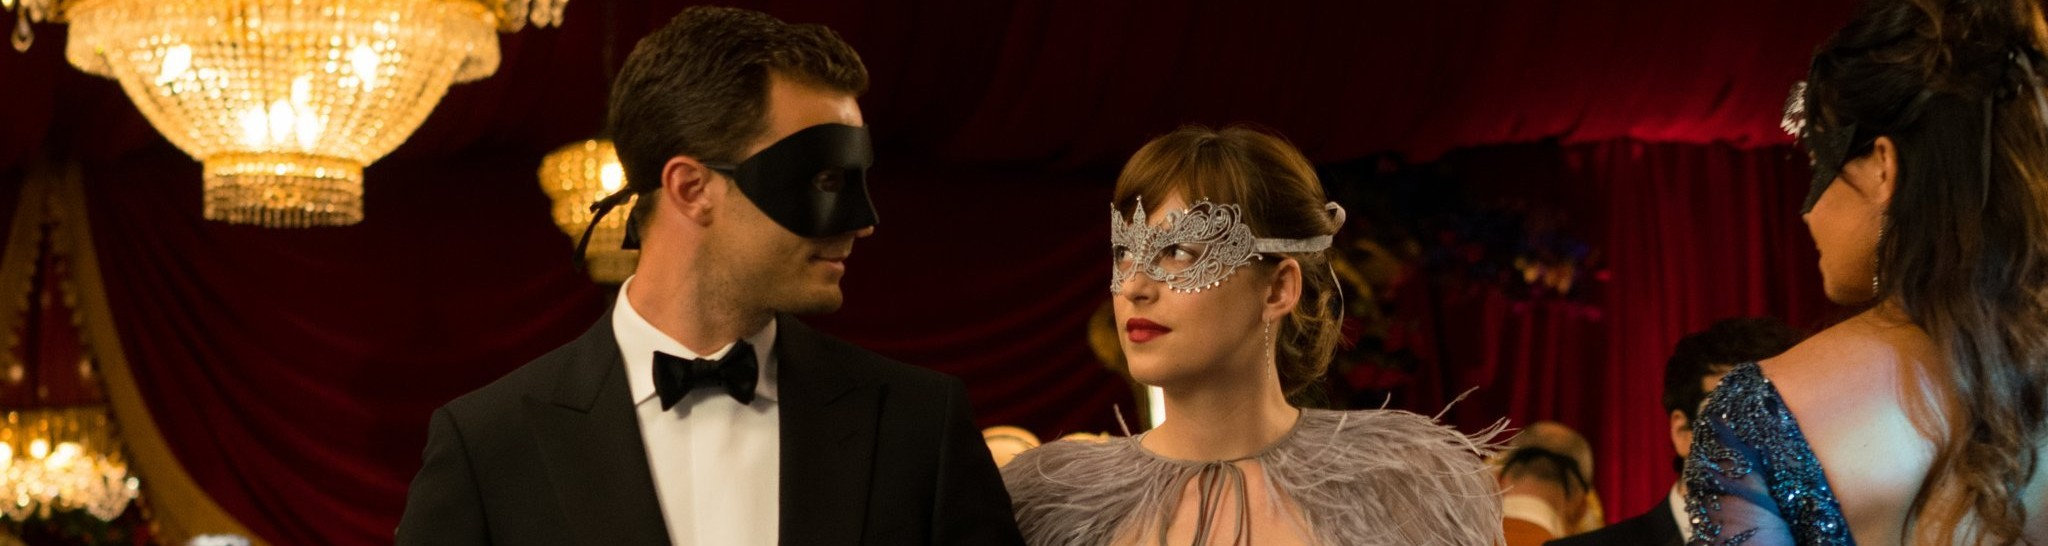 Masquerade Ball, Charity Event